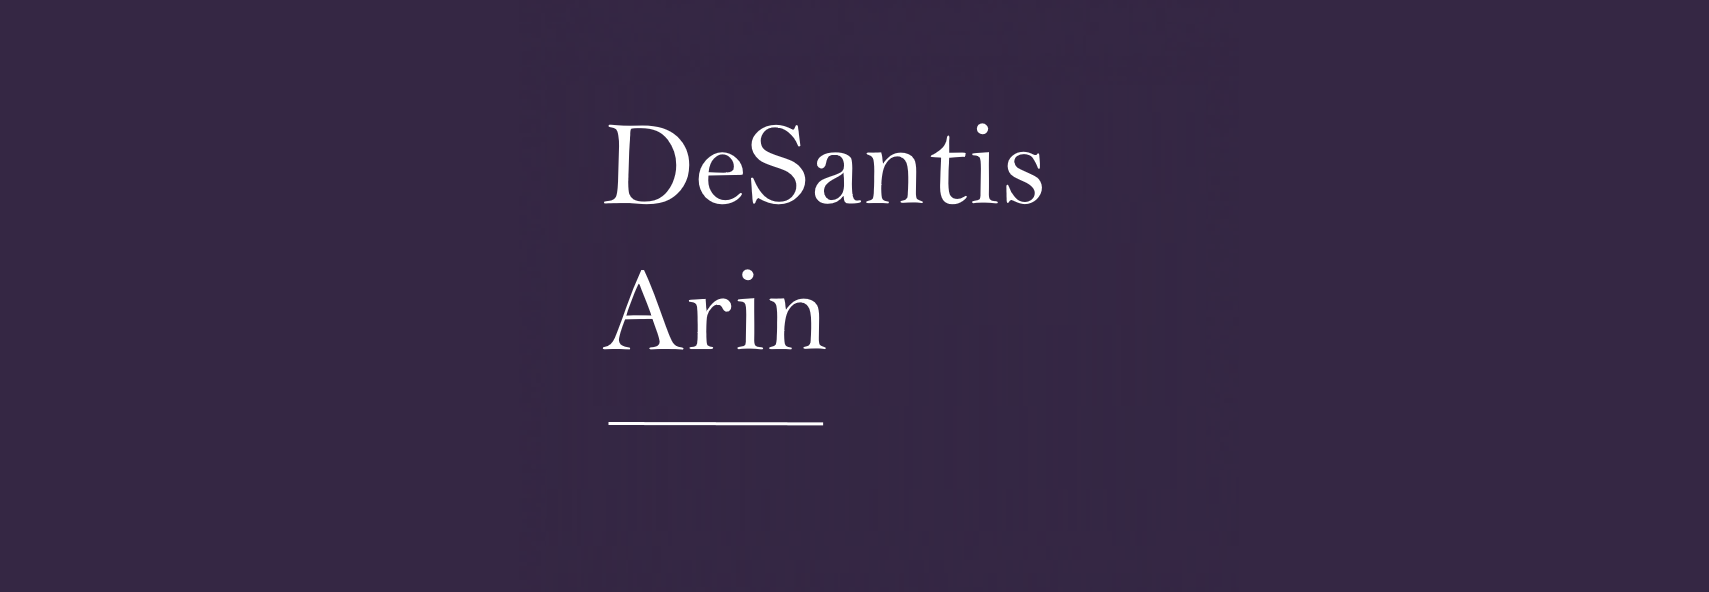 the best questions to ask in your interview desantis arin the best questions to ask in your interview